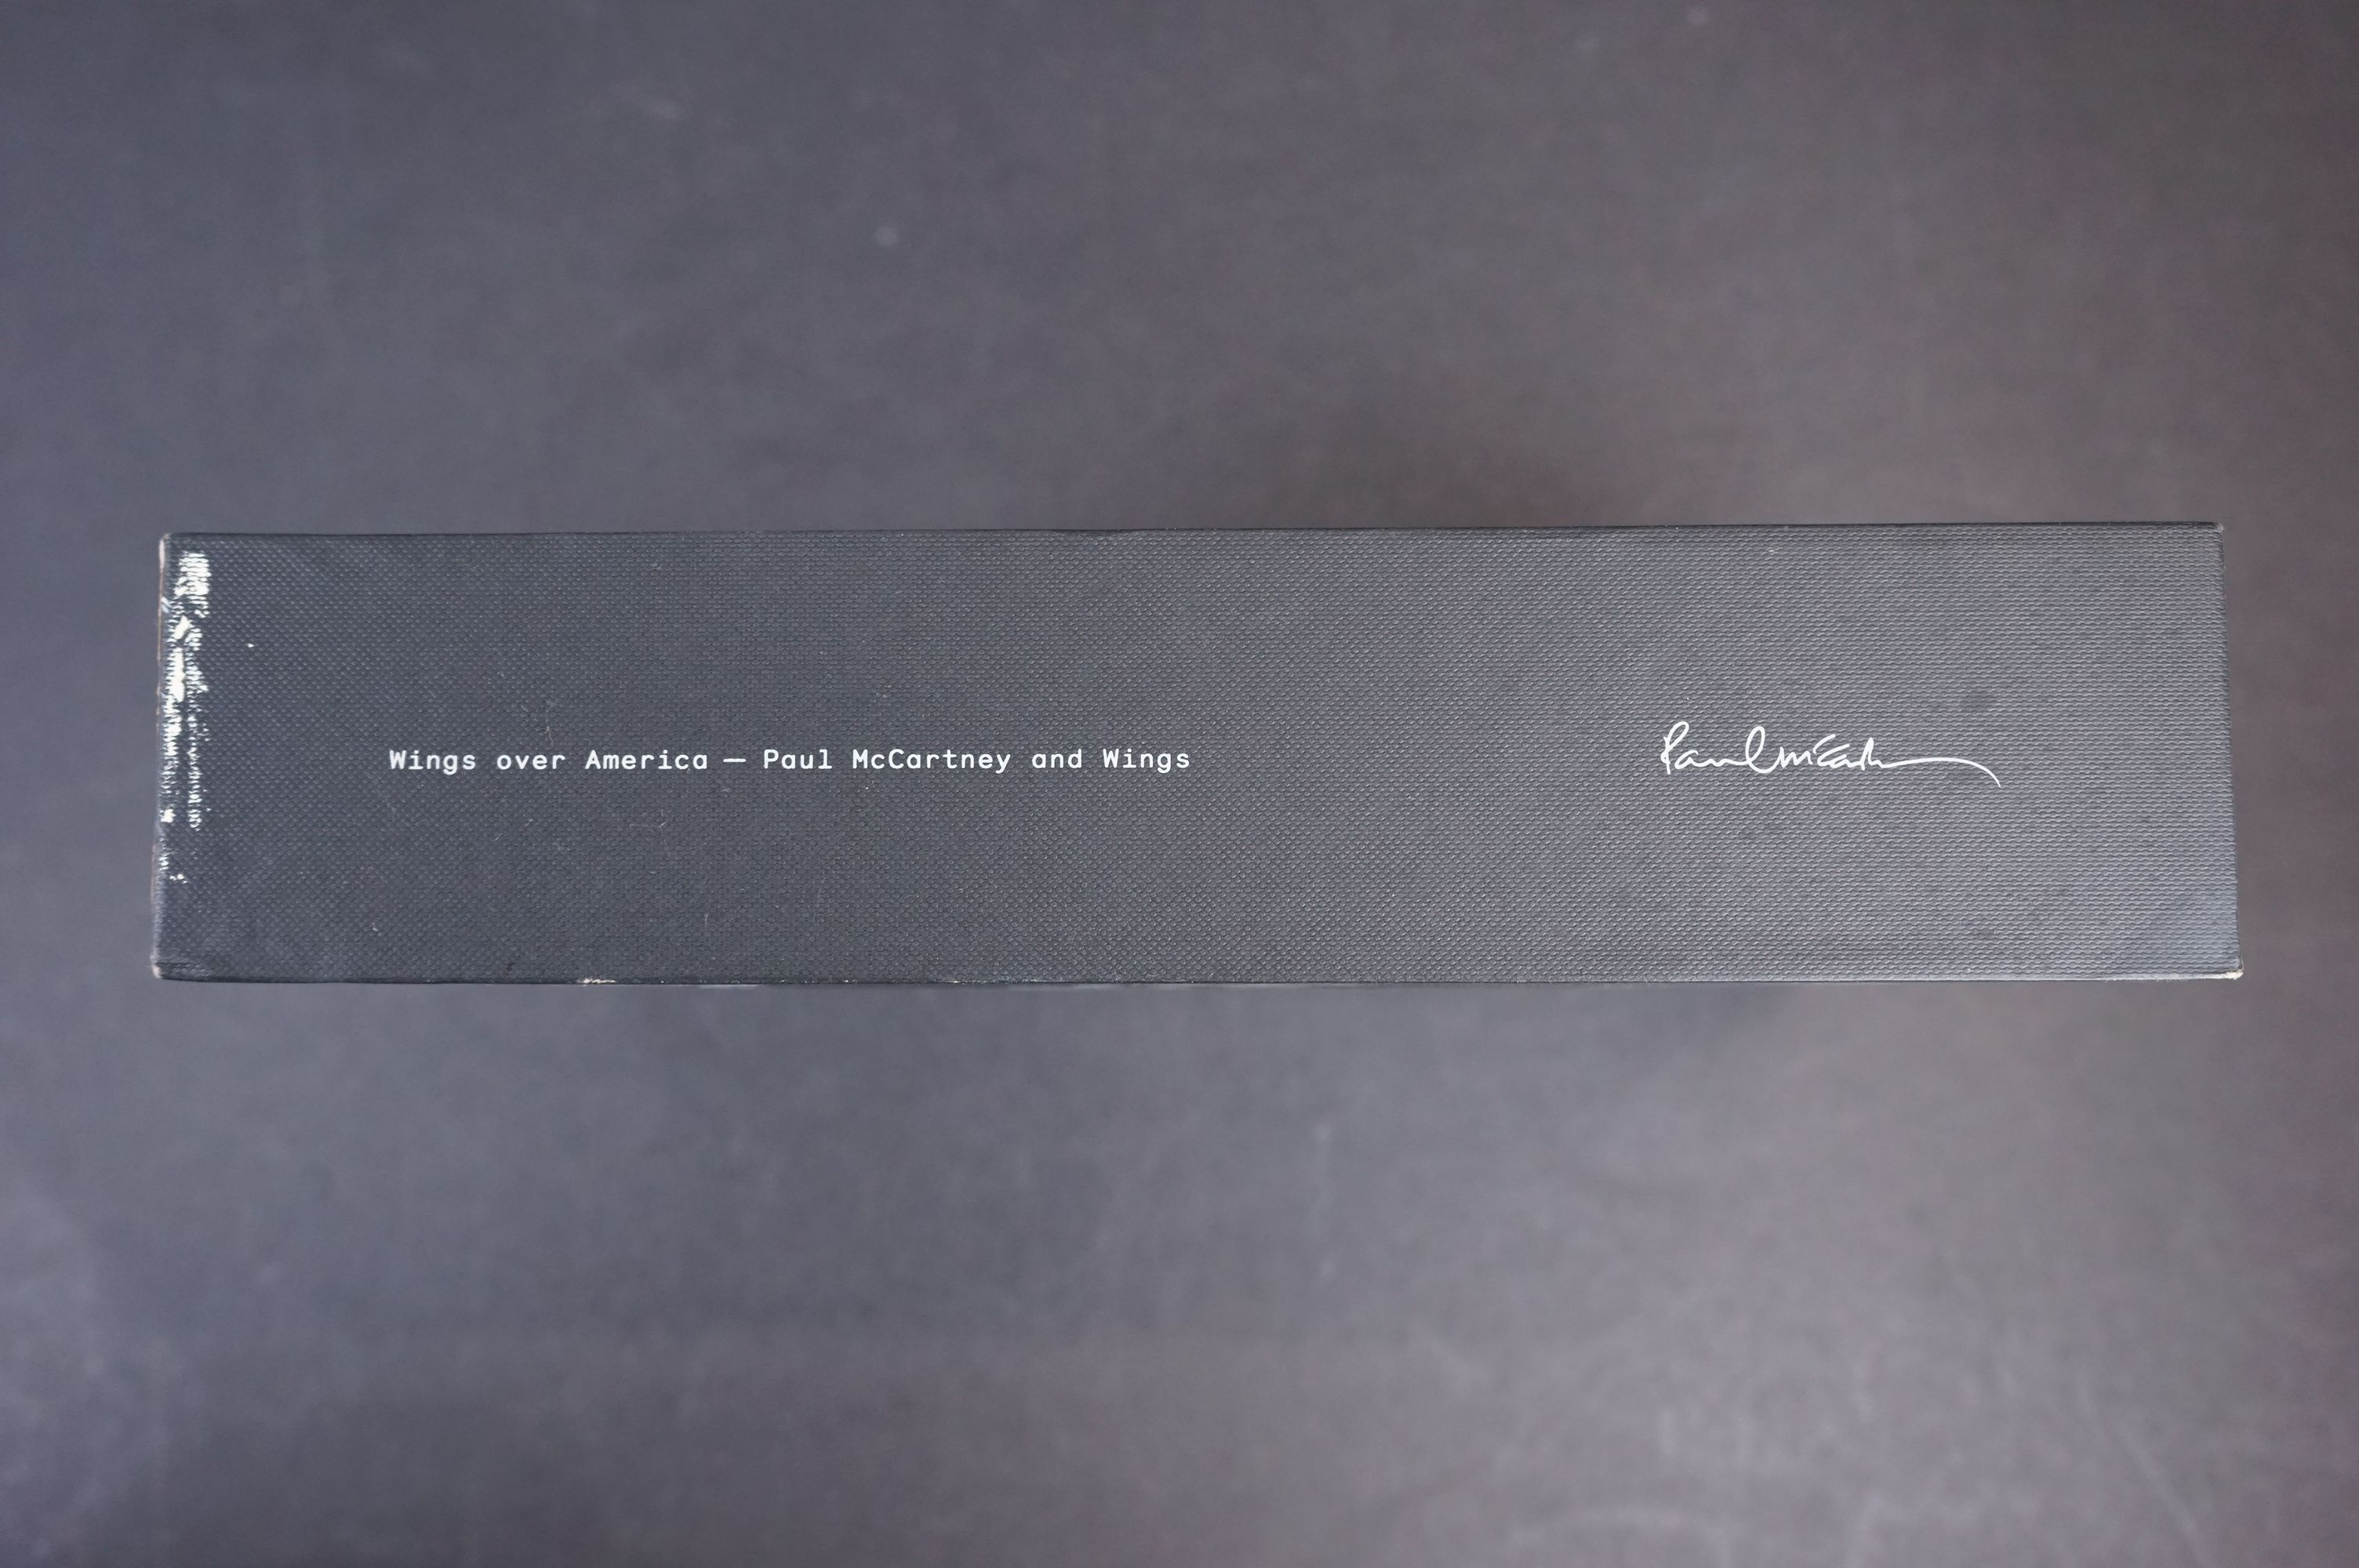 Box Set - Paul McCartney & Wings - Wings Over America numbered box set (03555) deluxe box set, ex - Image 17 of 18